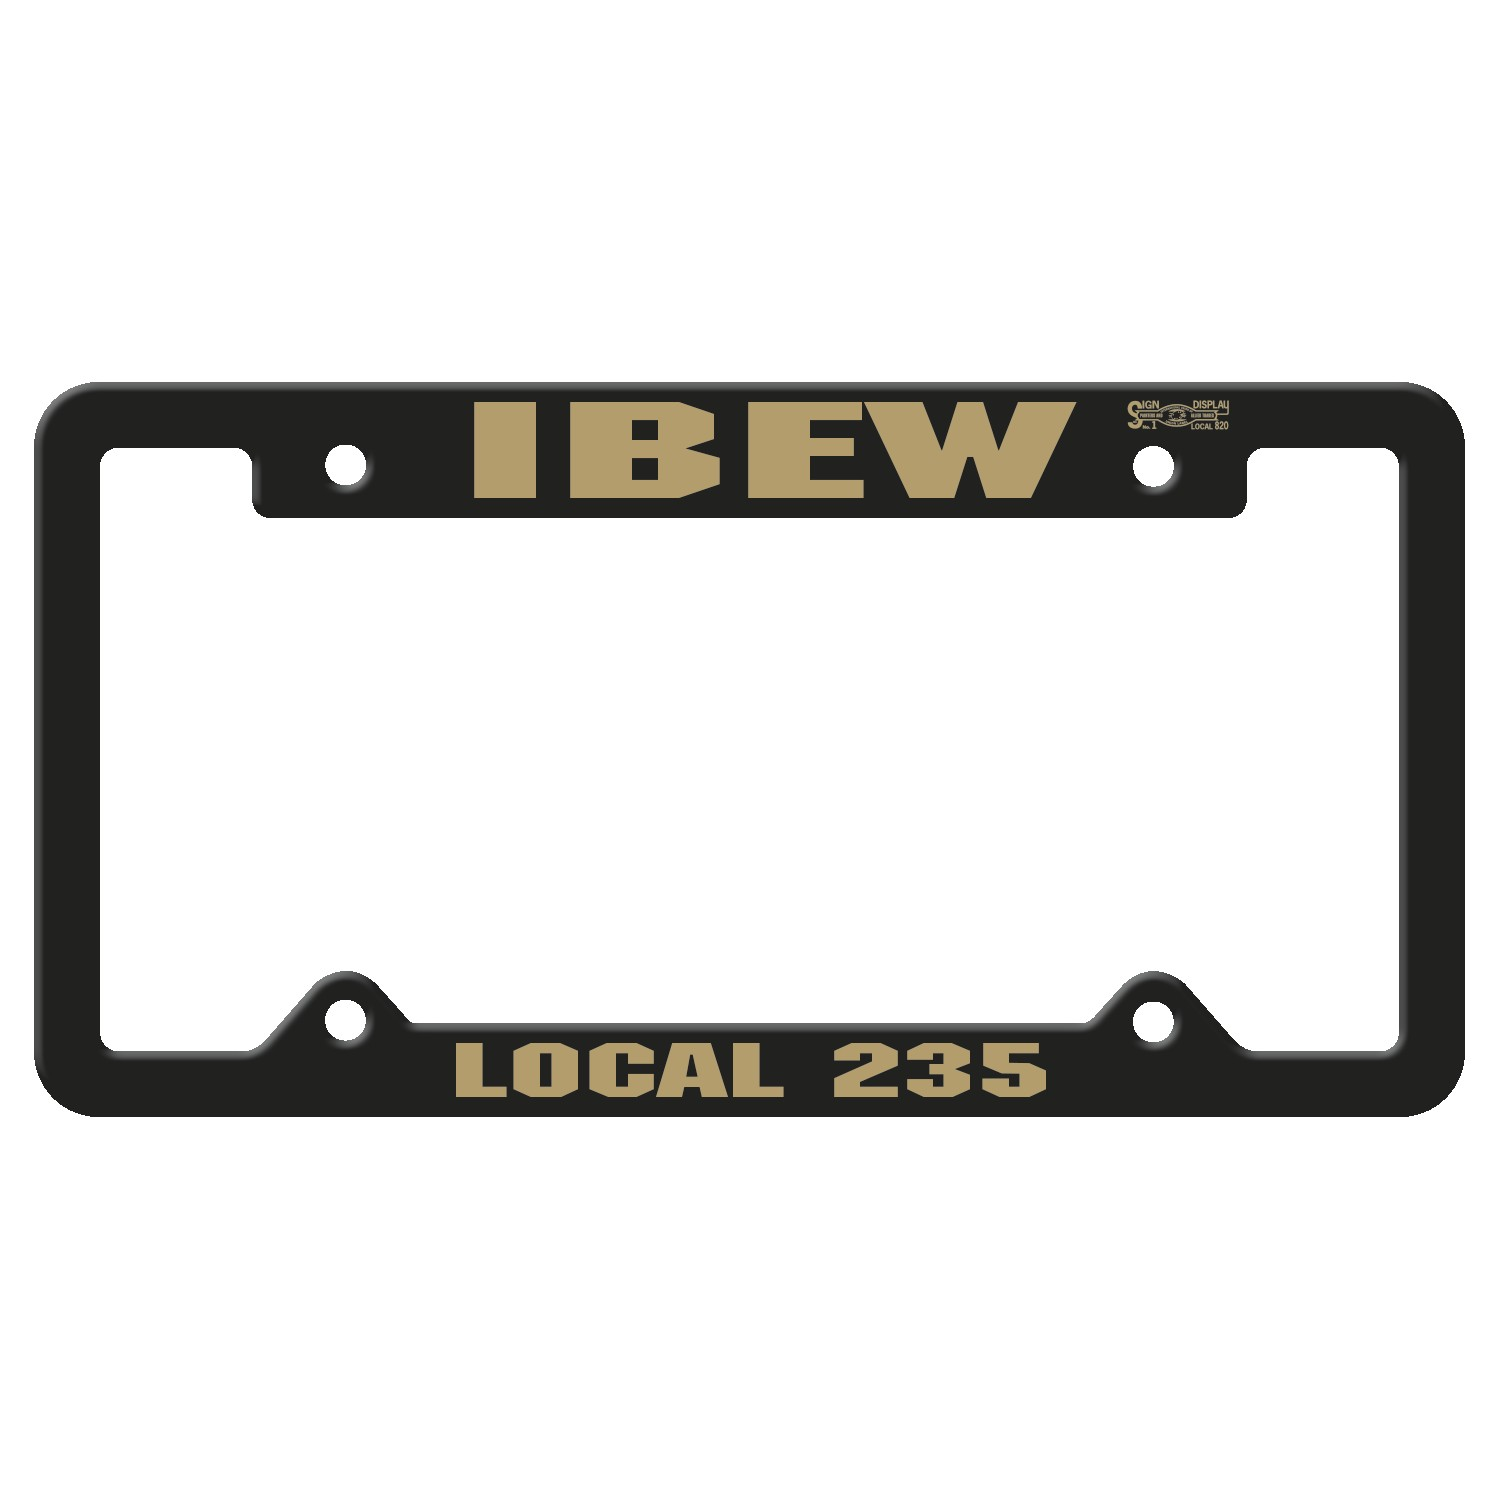 765880763-183 - Black Auto License Frame w/ 4 Holes & Large Top Panel - thumbnail